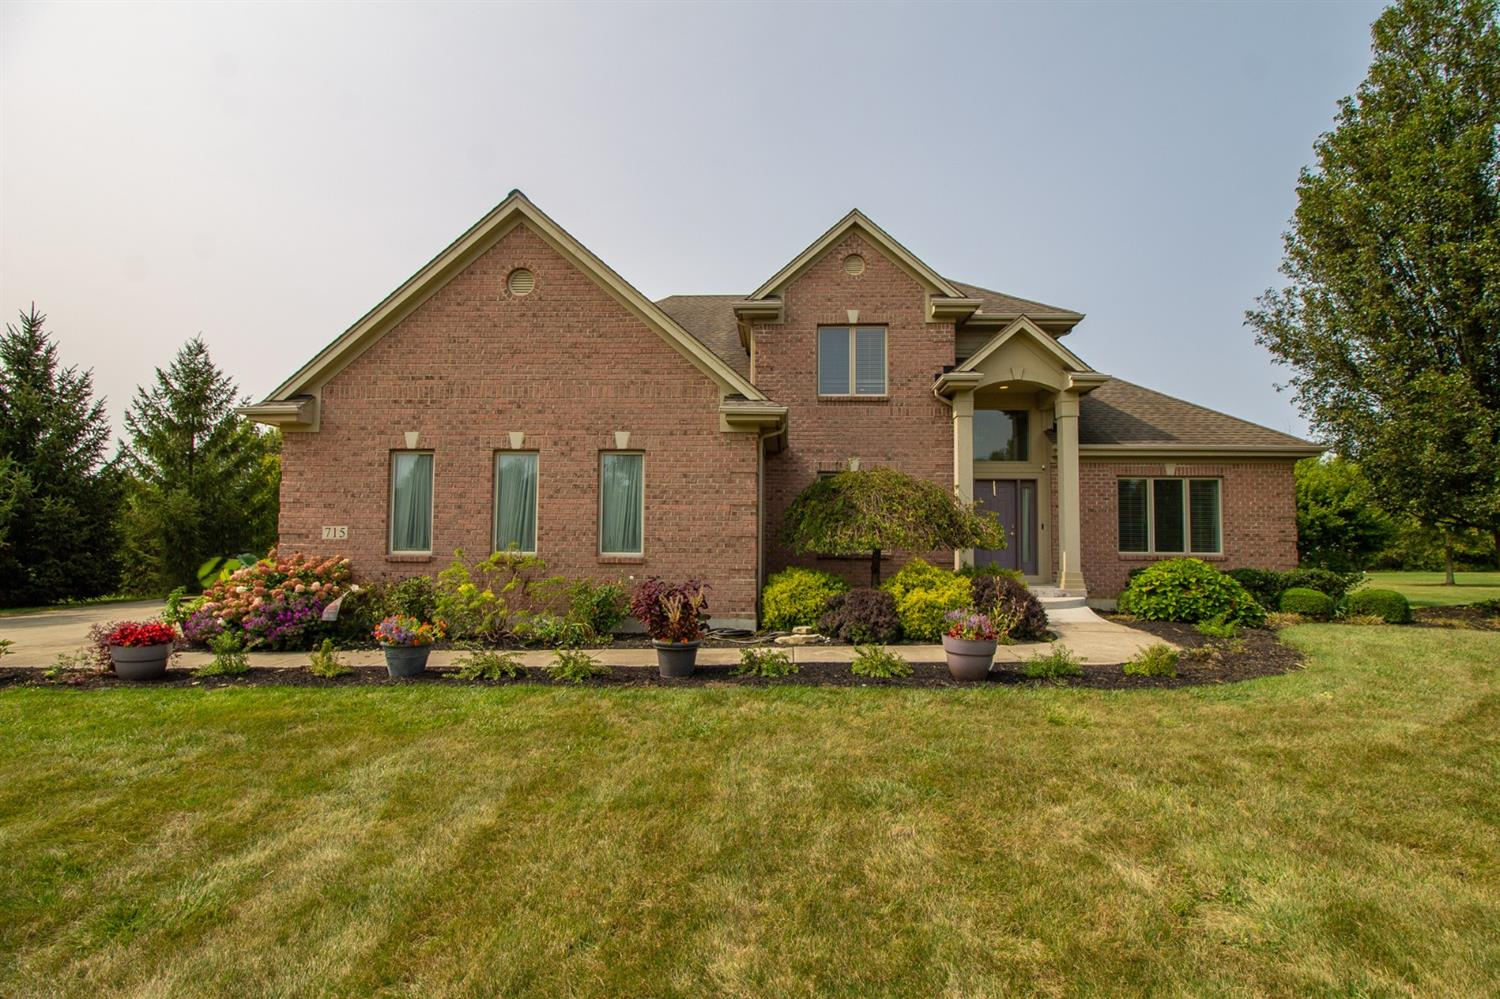 715 Dorothy Dr Turtle Creek Twp., OH